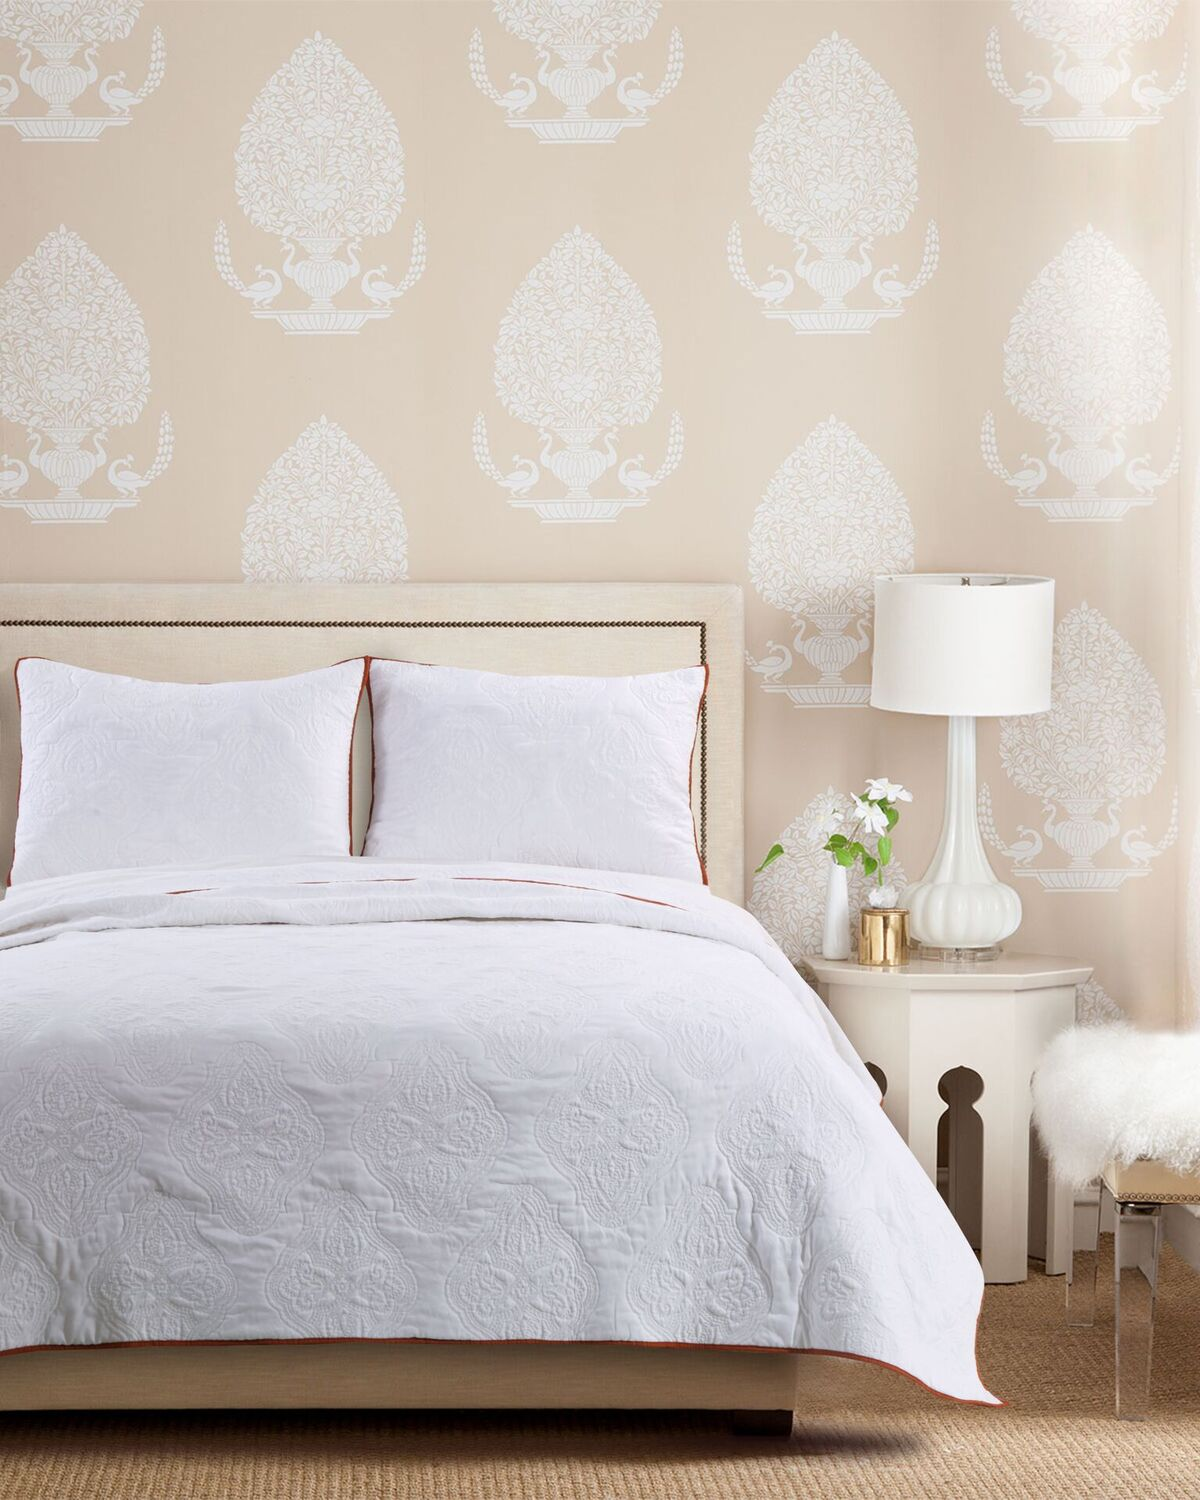 Cameo Whisper White Quilt Set, 3-Piece King